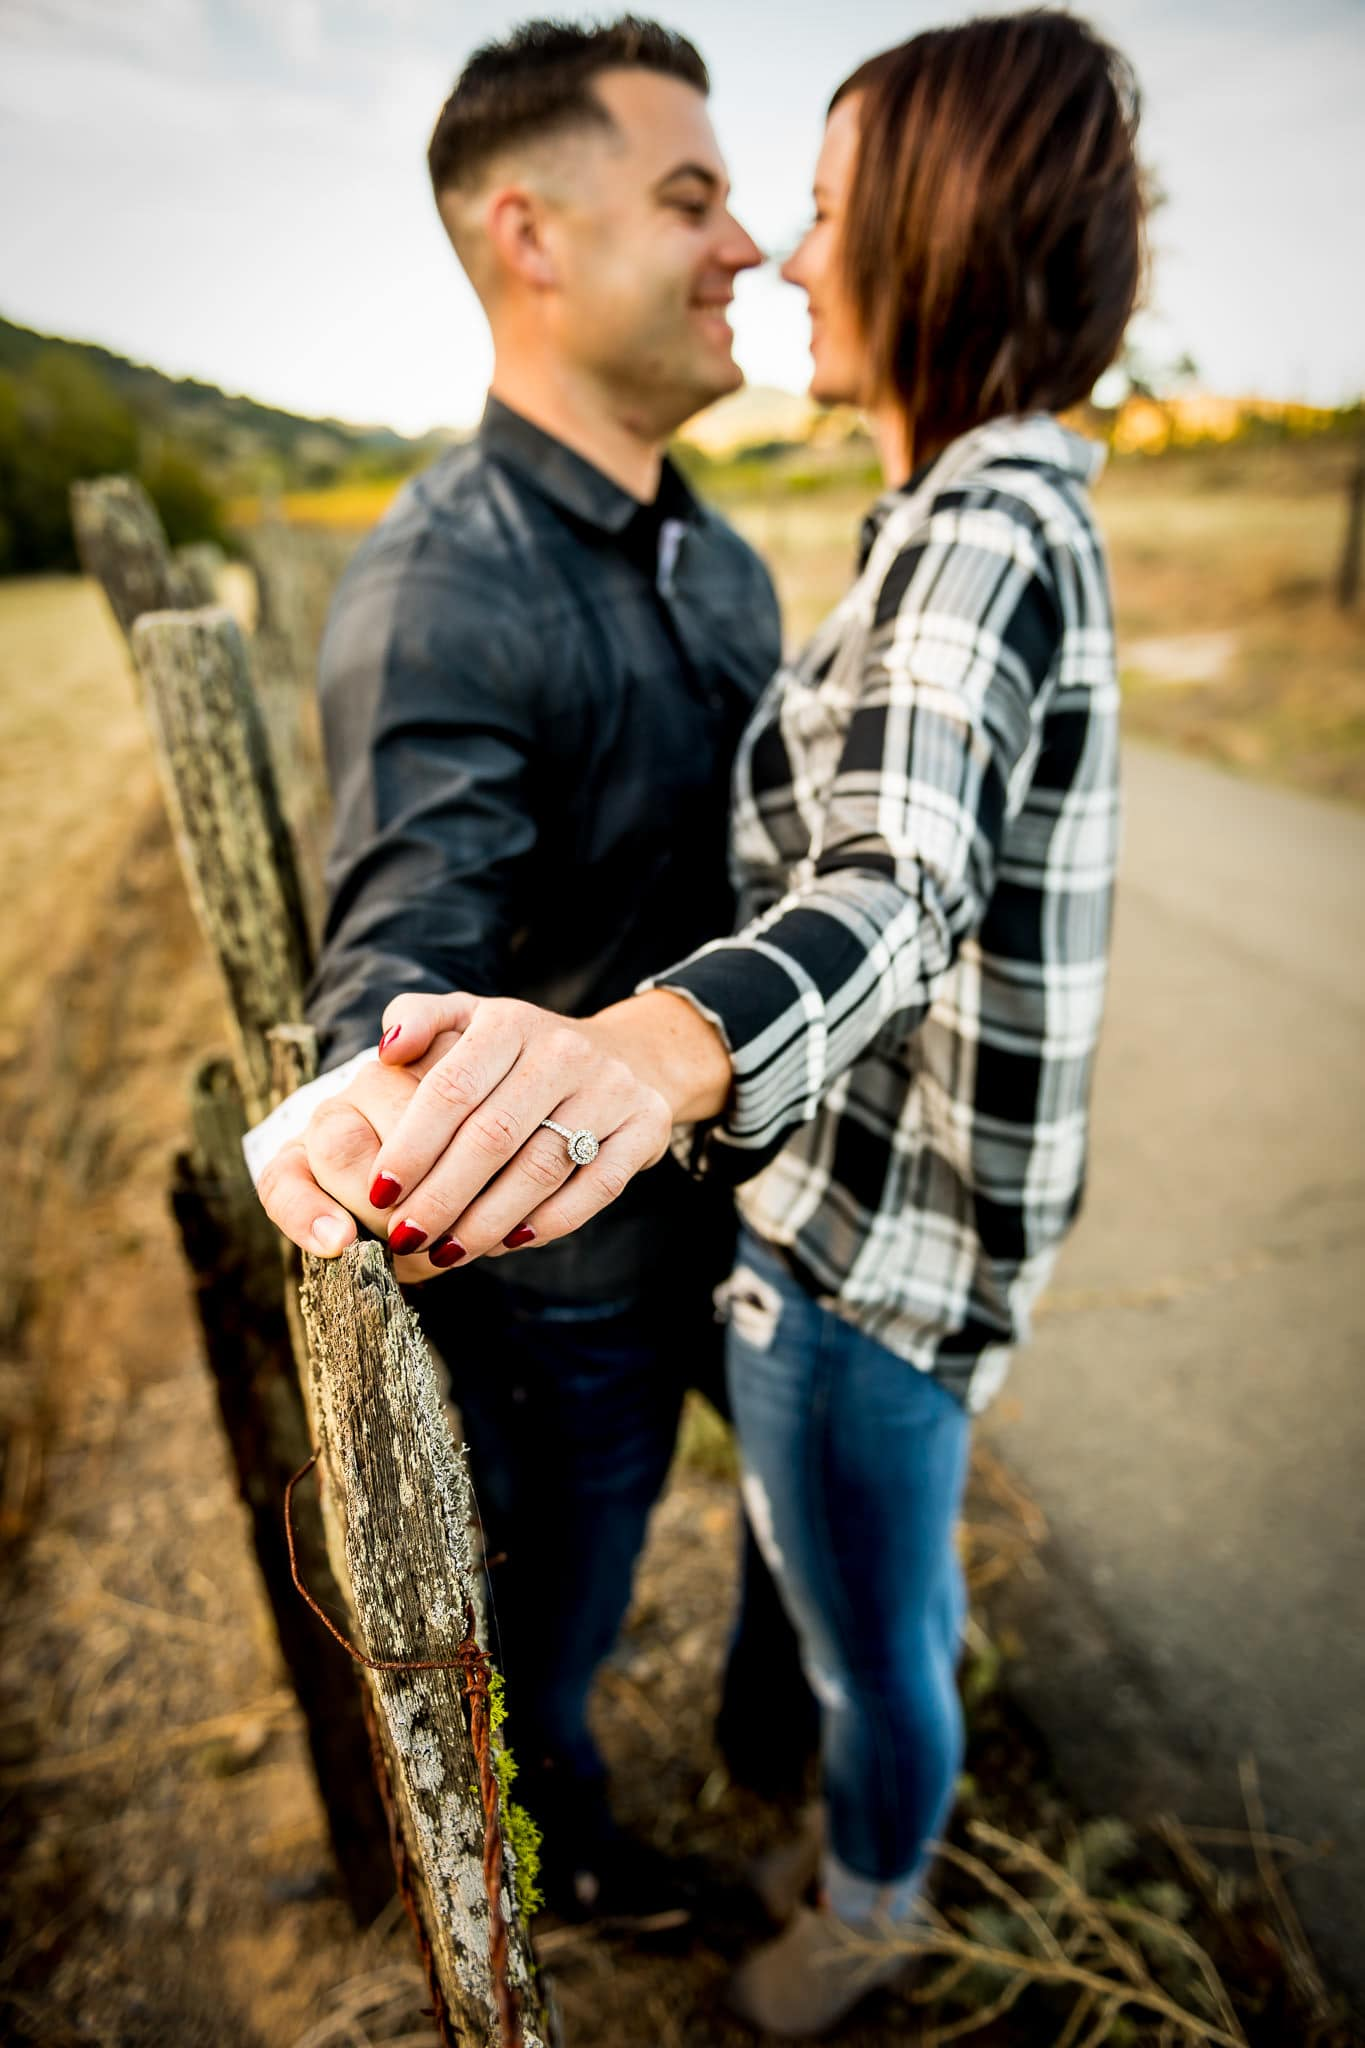 Engagement ring focus photo of an engaged couple sharing a sweet moment along a fence running through Napa Valley